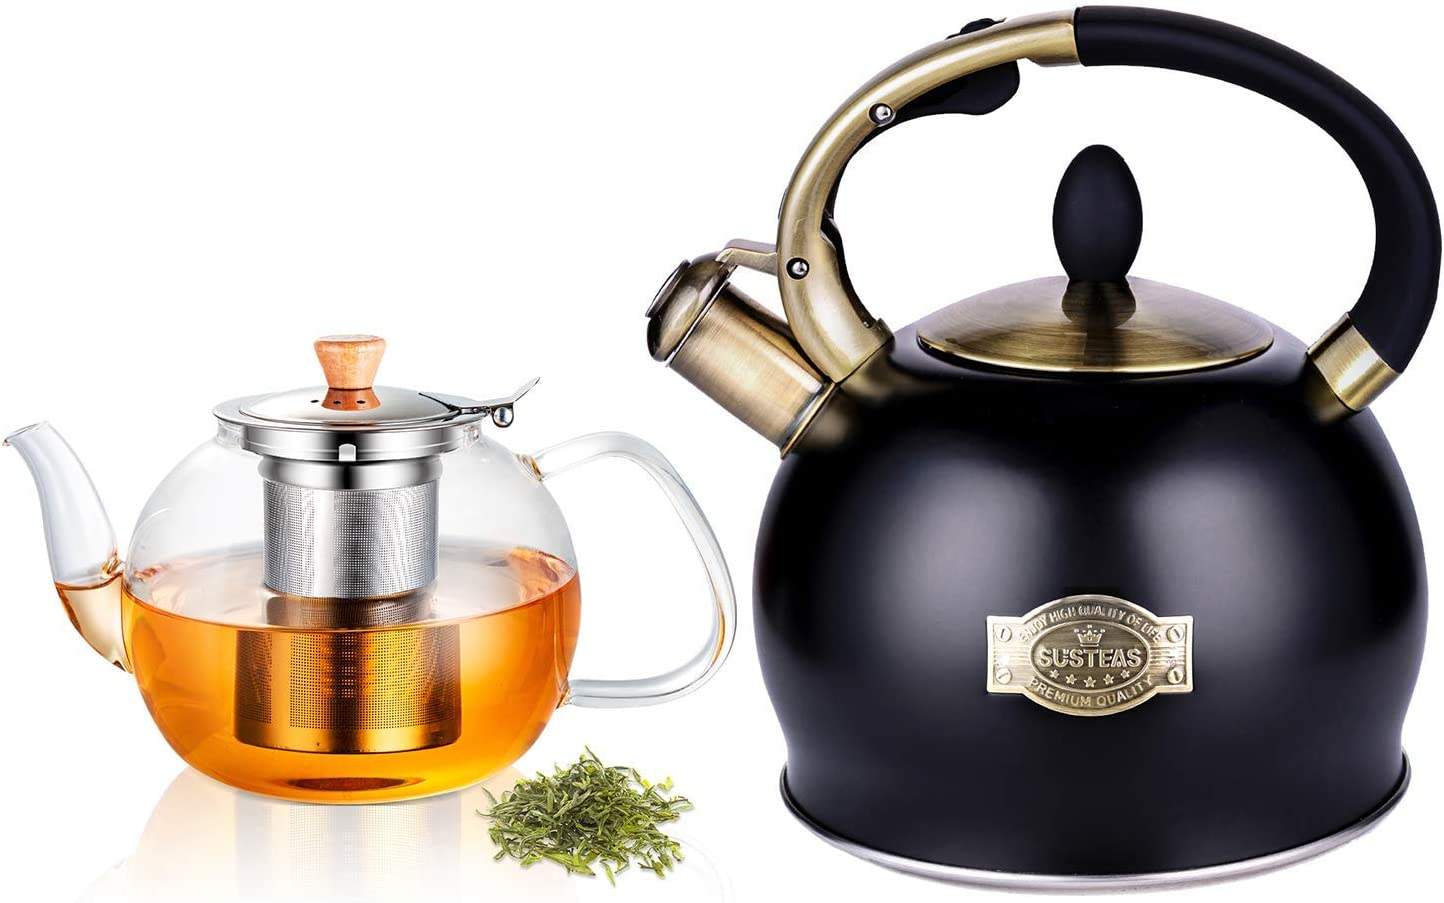 SUSTEAS 2.64 Quart Stove Max 65% Max 68% OFF OFF Top Whistling Ounces Tea Kettle 40 and